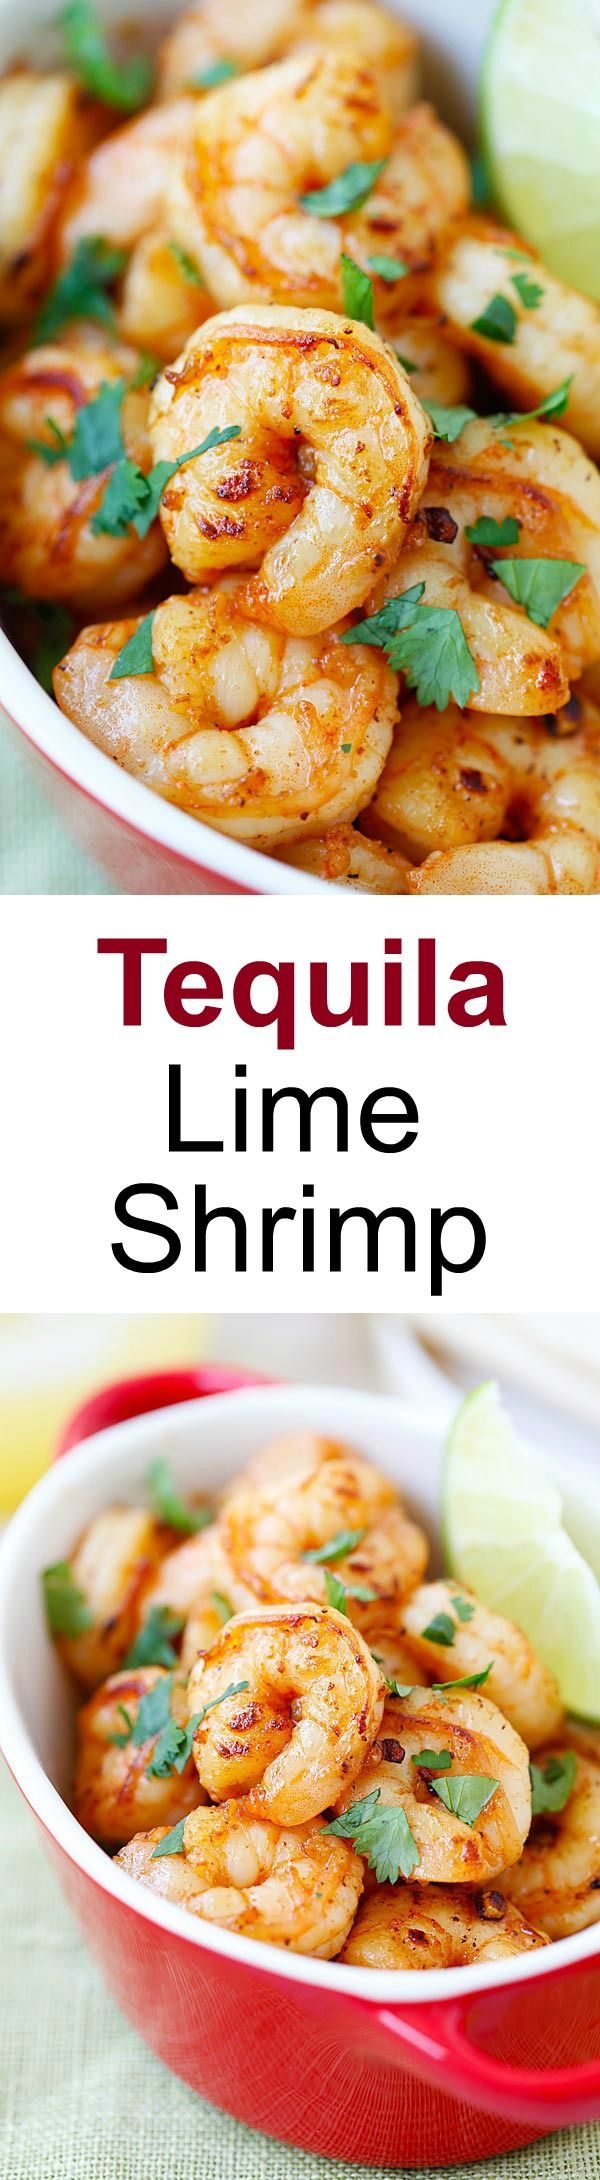 Tequila Lime Shrimp – shrimp with tequila, lime & cilantro! Crazy easy & budget friendly recipe, SO good and takes 15 mins to make | rasamalaysia.com